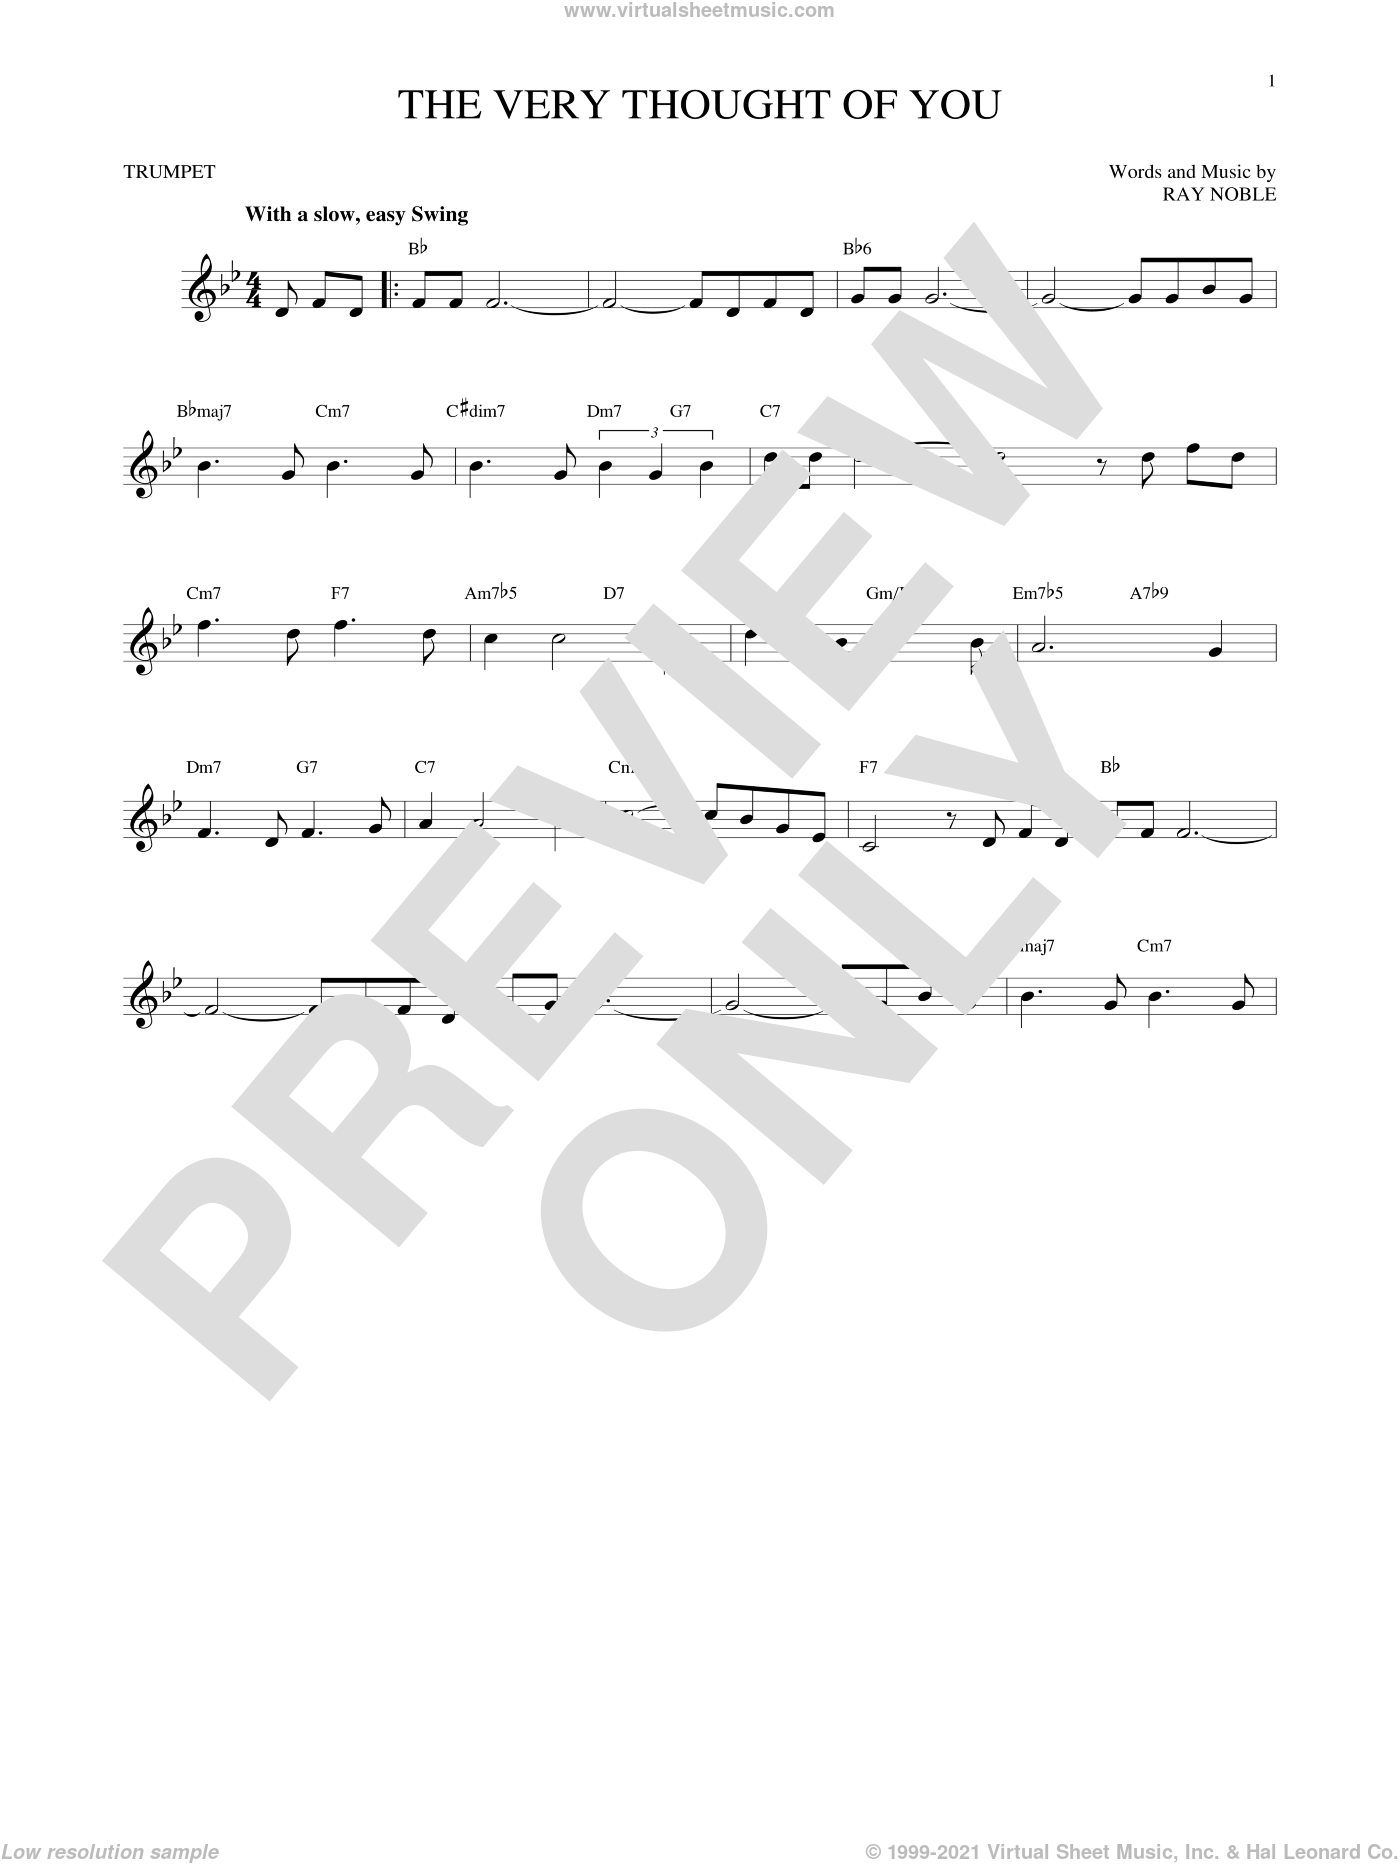 The Very Thought Of You sheet music for trumpet solo by Ray Noble, intermediate skill level